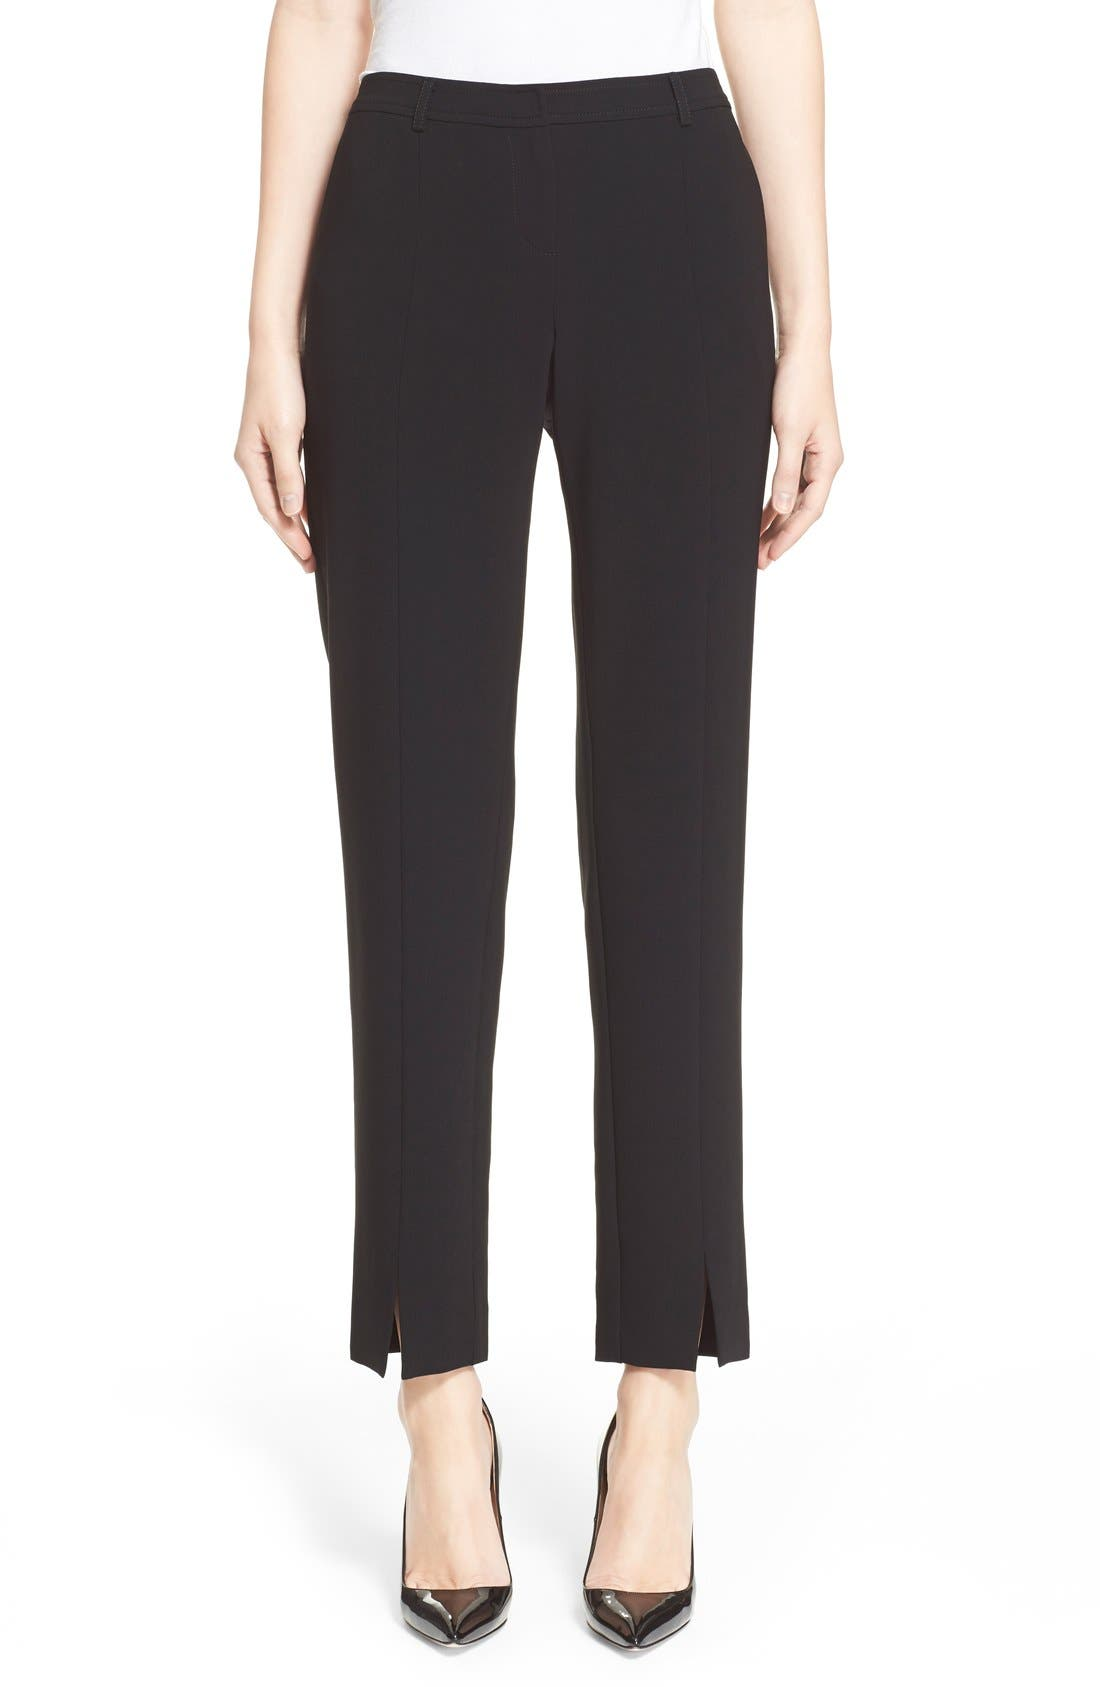 Alternate Image 1 Selected - St. John Collection 'Jennifer' Crepe Marocain Ankle Pants